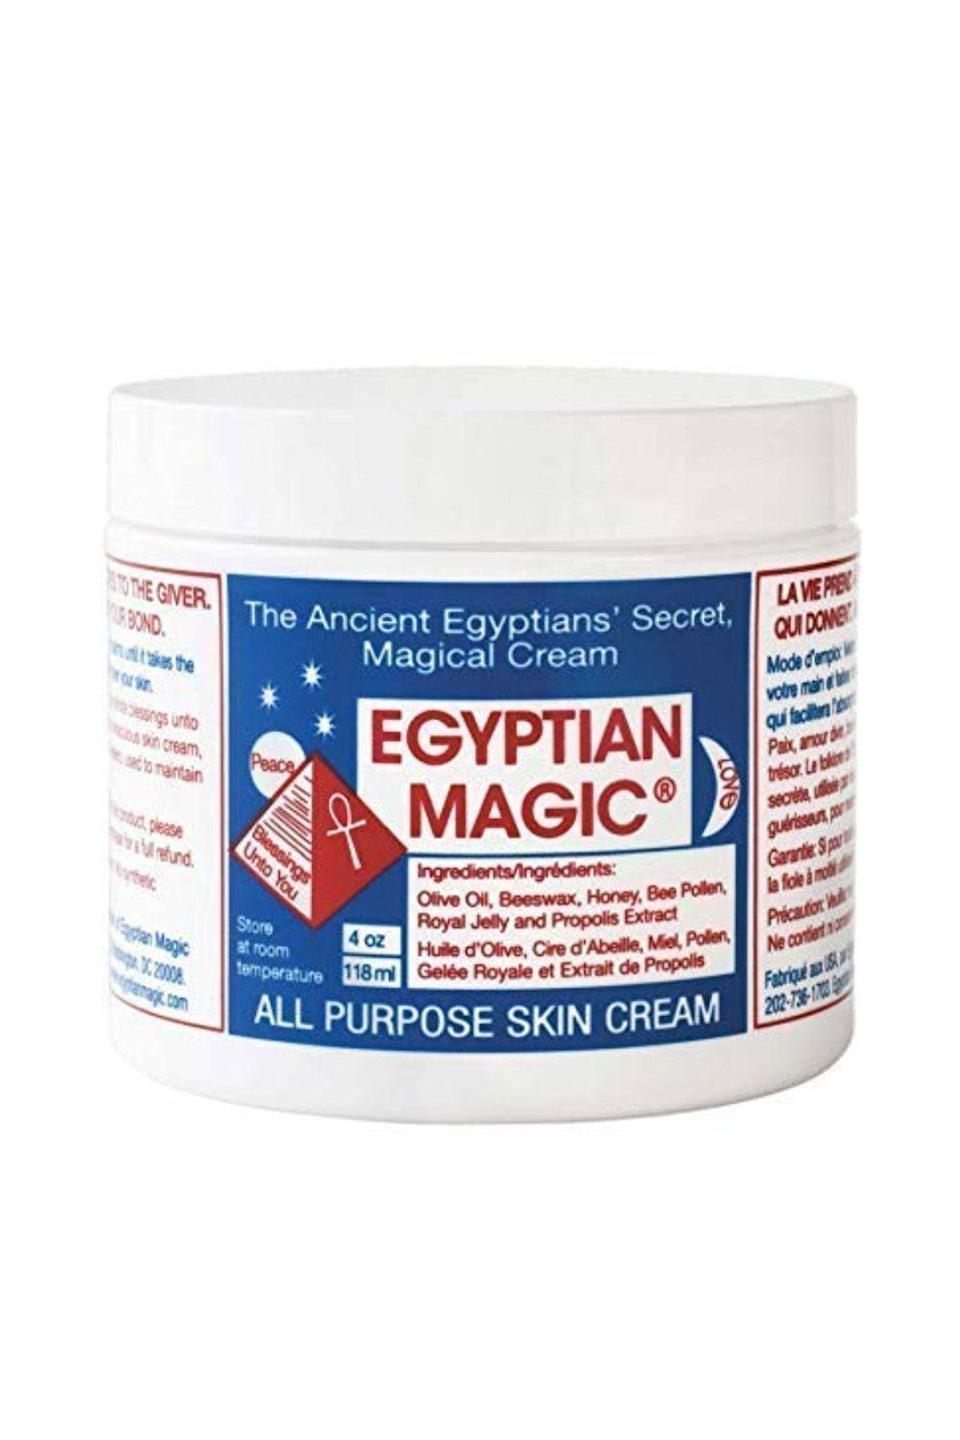 """<p><strong>Egyptian Magic</strong></p><p>amazon.com</p><p><strong>$31.99</strong></p><p><a href=""""https://www.amazon.com/dp/B000WNLFBI?tag=syn-yahoo-20&ascsubtag=%5Bartid%7C10072.g.33013870%5Bsrc%7Cyahoo-us"""" rel=""""nofollow noopener"""" target=""""_blank"""" data-ylk=""""slk:SHOP NOW"""" class=""""link rapid-noclick-resp"""">SHOP NOW</a></p><p><em>S</em>truggling with eternally chapped, cracked cuticles? According to nail artist <a href=""""https://www.instagram.com/fleuryrosenails/?hl=en"""" rel=""""nofollow noopener"""" target=""""_blank"""" data-ylk=""""slk:Fleury Rose"""" class=""""link rapid-noclick-resp"""">Fleury Rose</a>, Egyptian Magic All Purpose Skin Cream works like, well, magic. Not only is the cult-favorite formula multifunctional (so you can also use it on your face, your lips, your body, even your curling iron burns), but it's also loaded with nourishing ingredients like olive oil, beeswax, honey, bee pollen, royal jelly, and bee propolis.</p>"""